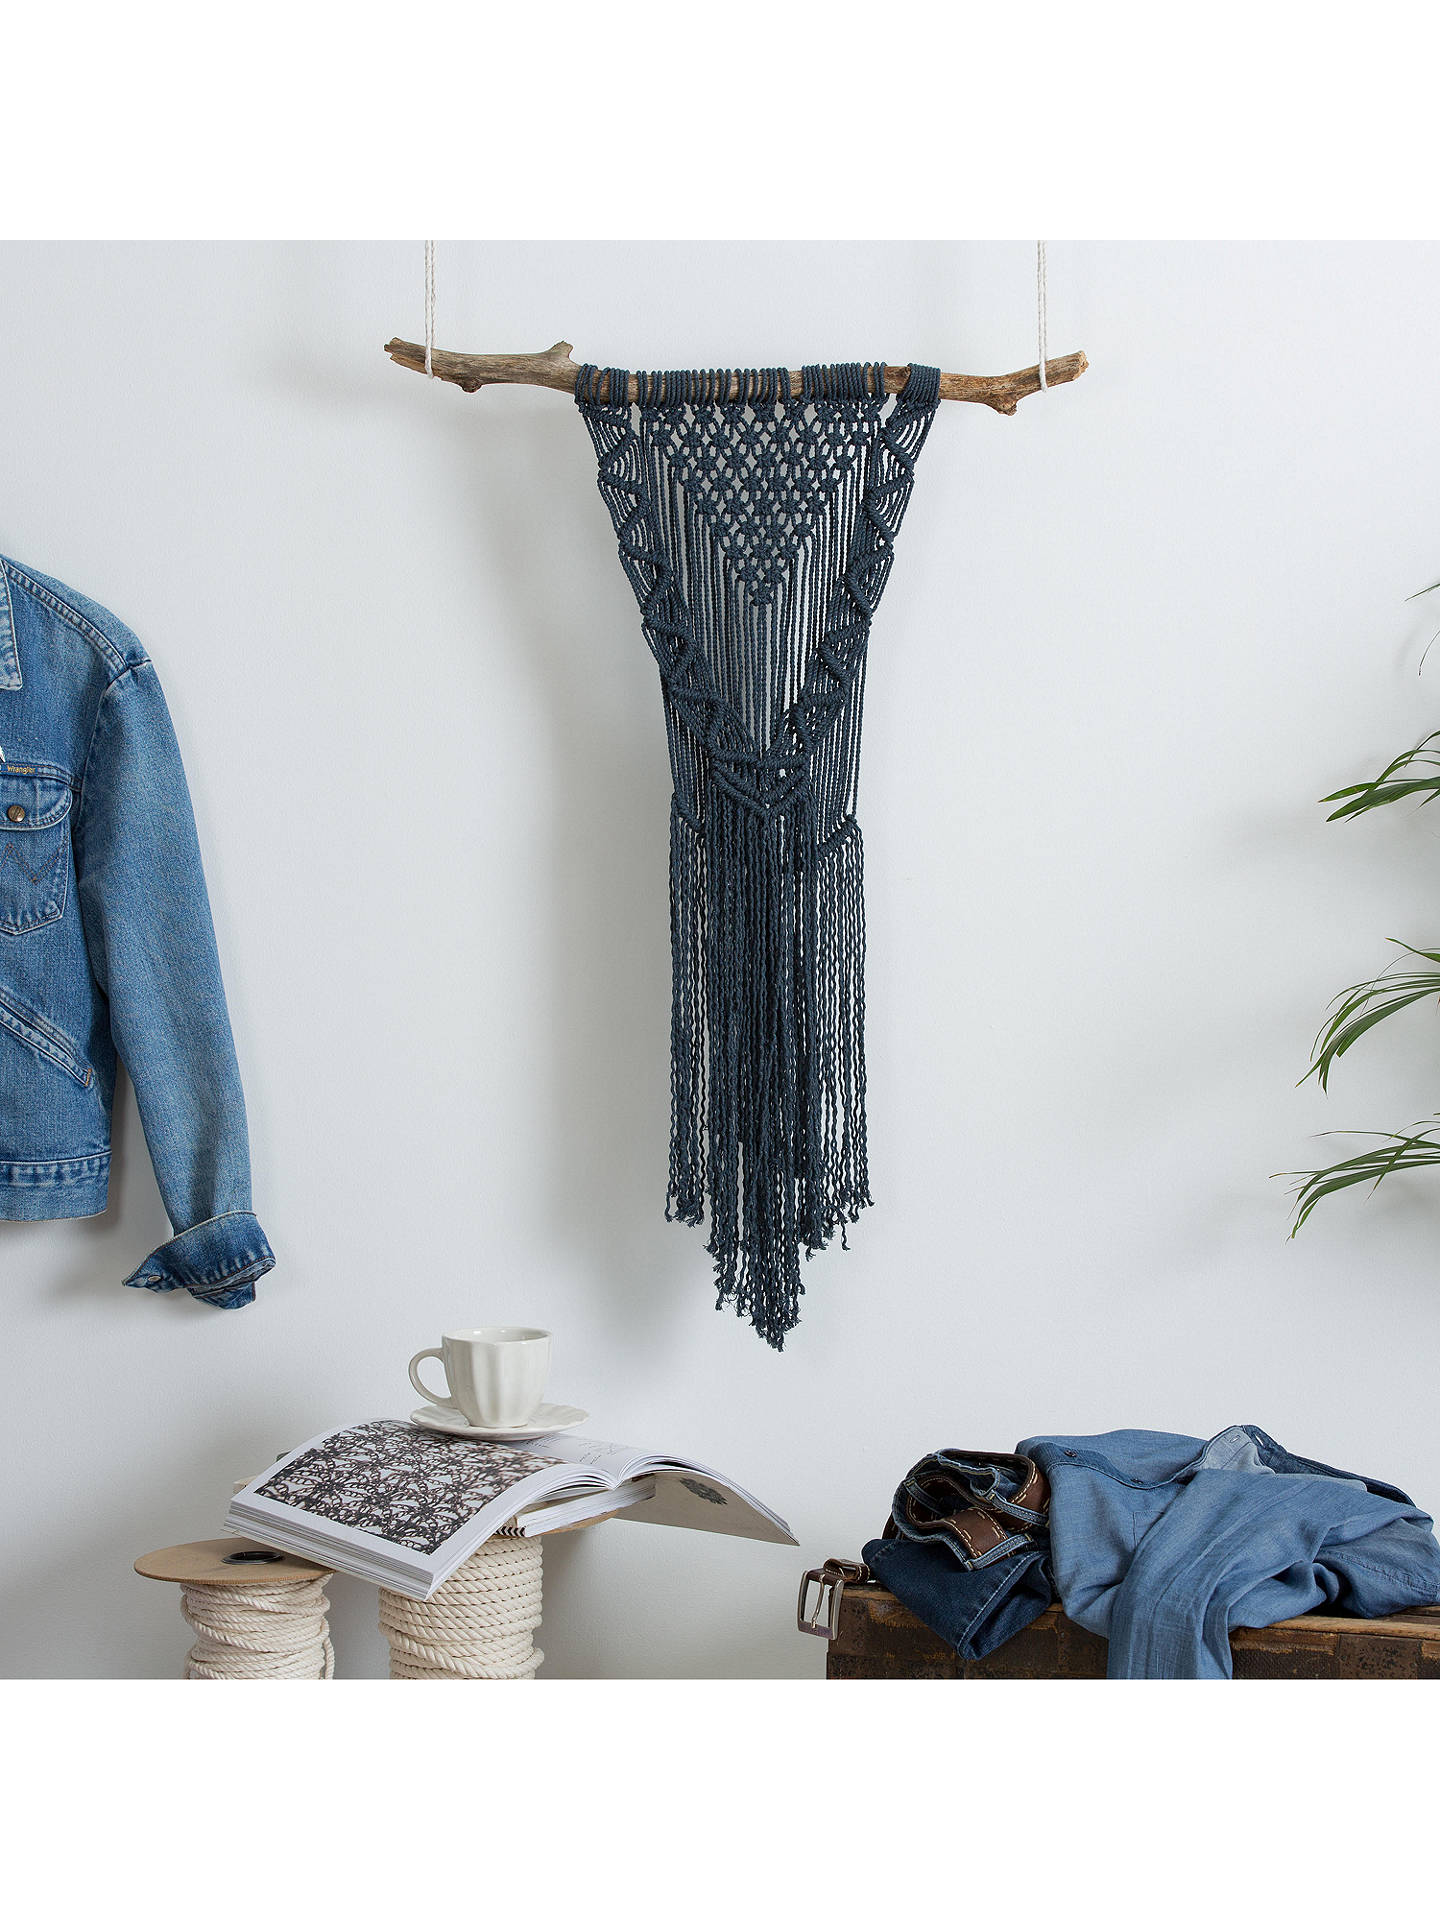 Buy Wool Couture Boho Dreams Macrame Wall Hanging Craft Kit, Denim Online at johnlewis.com